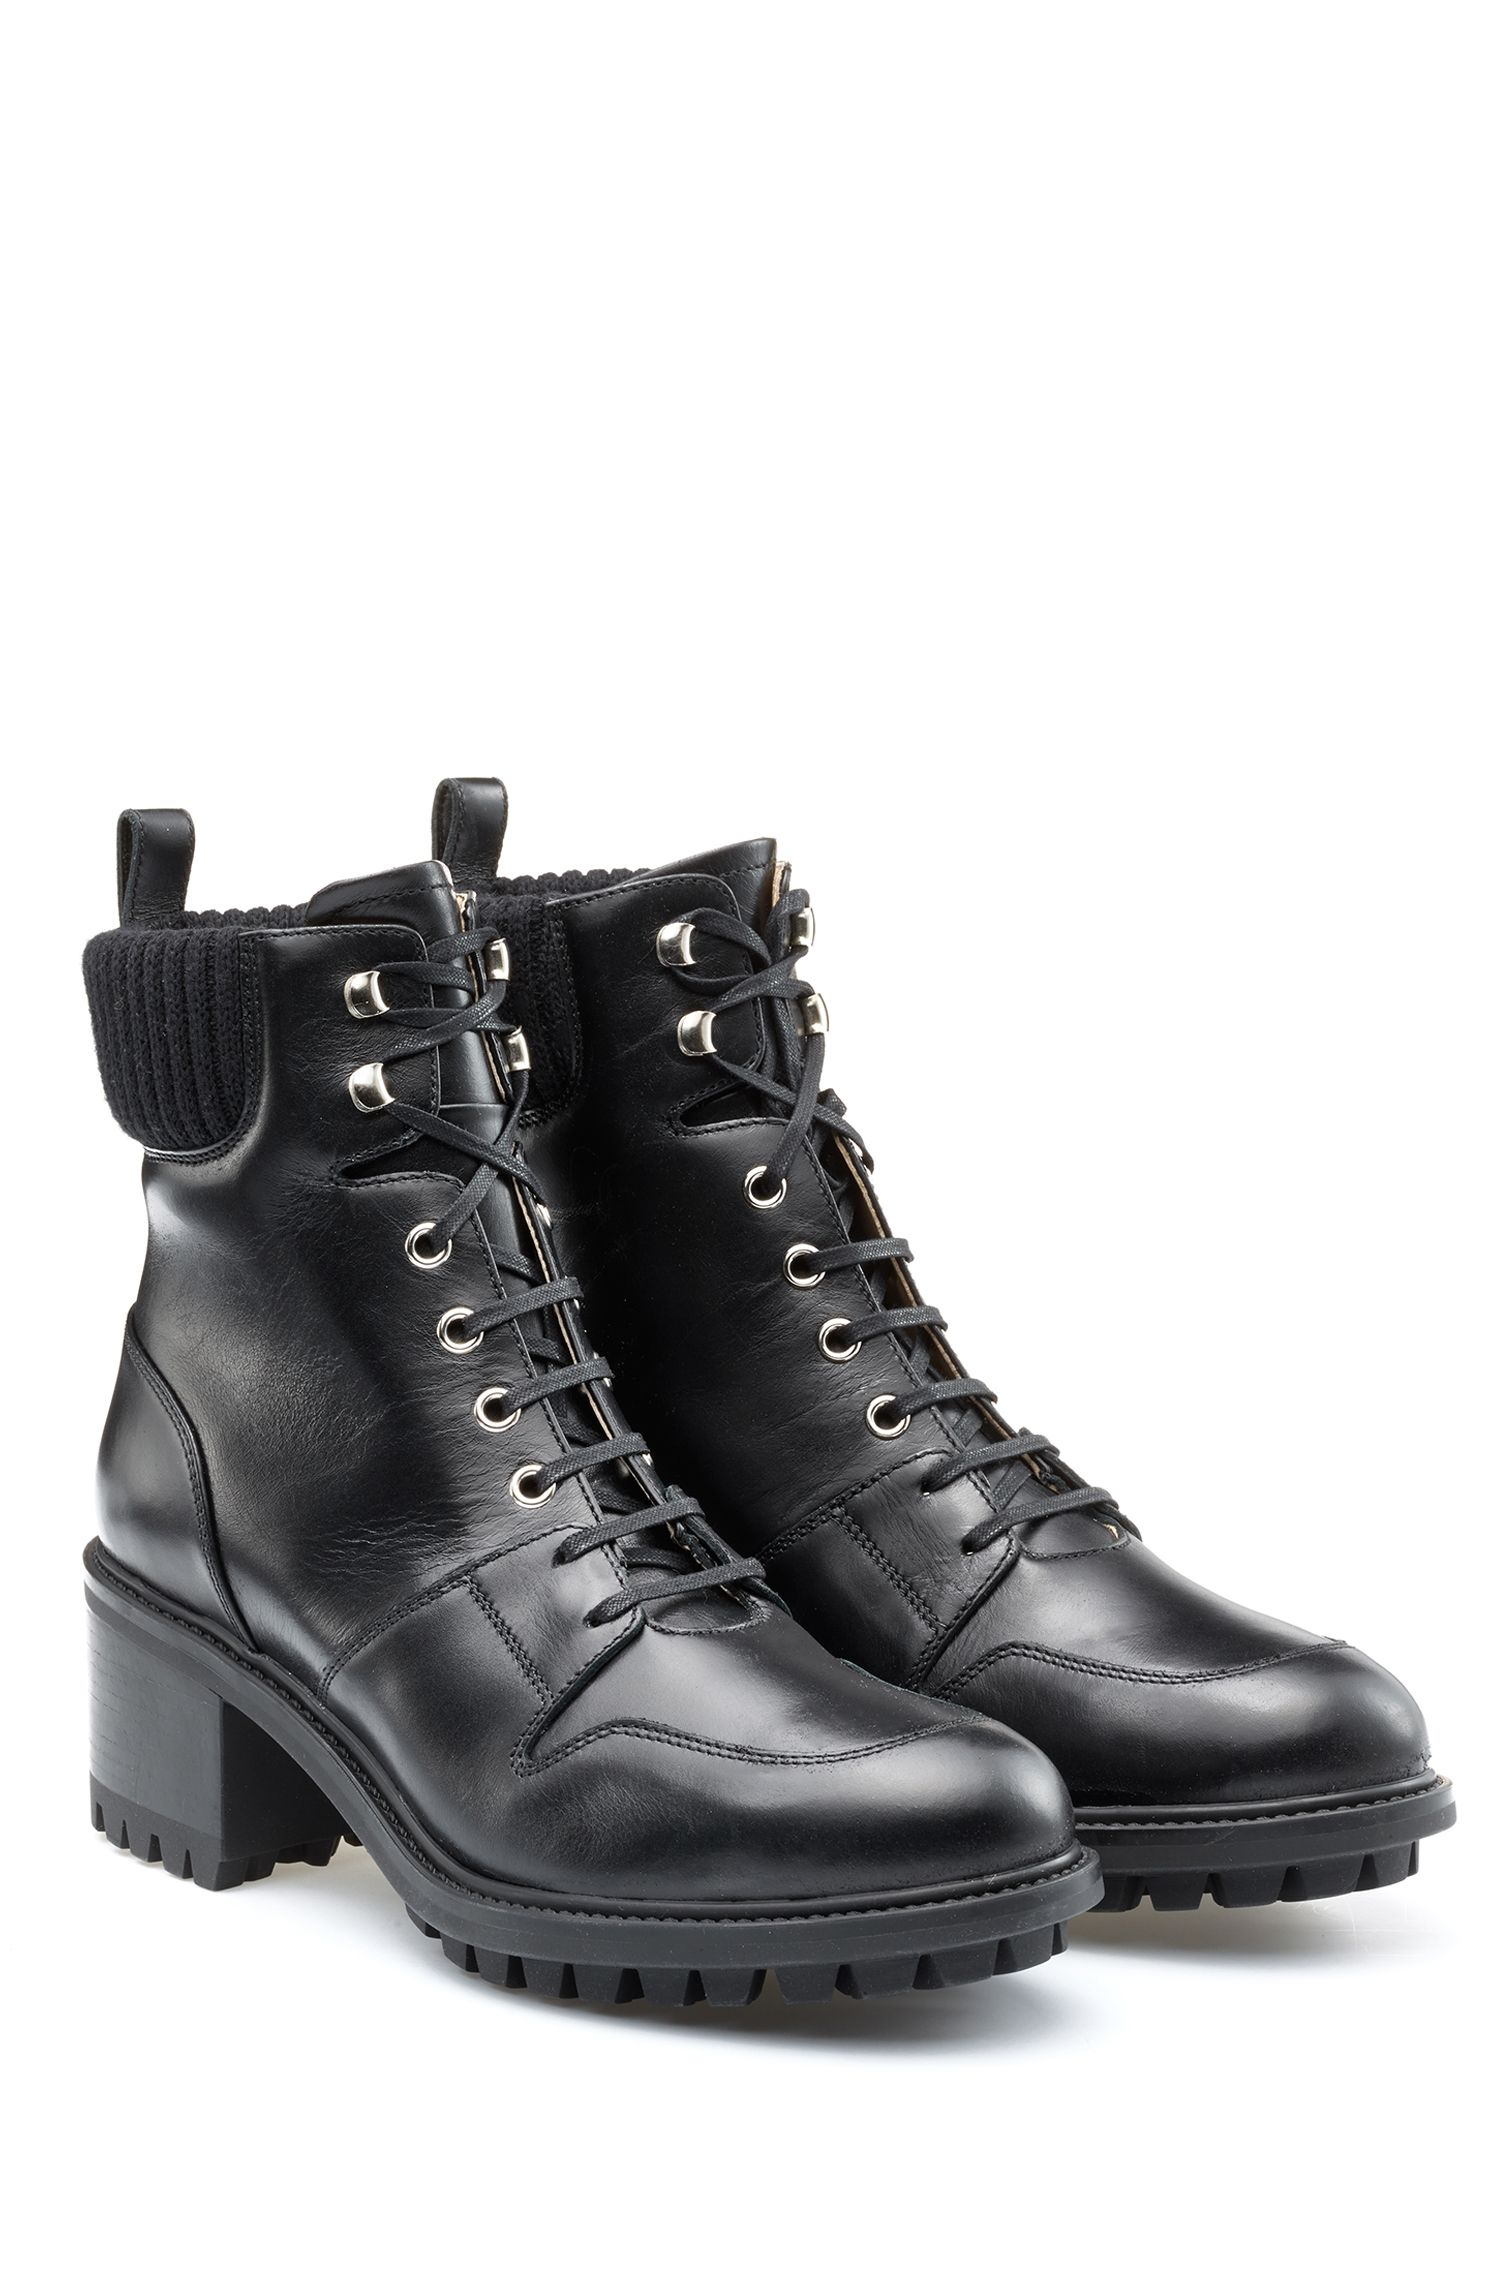 Lace-up calf-leather boots with lug sole, Black